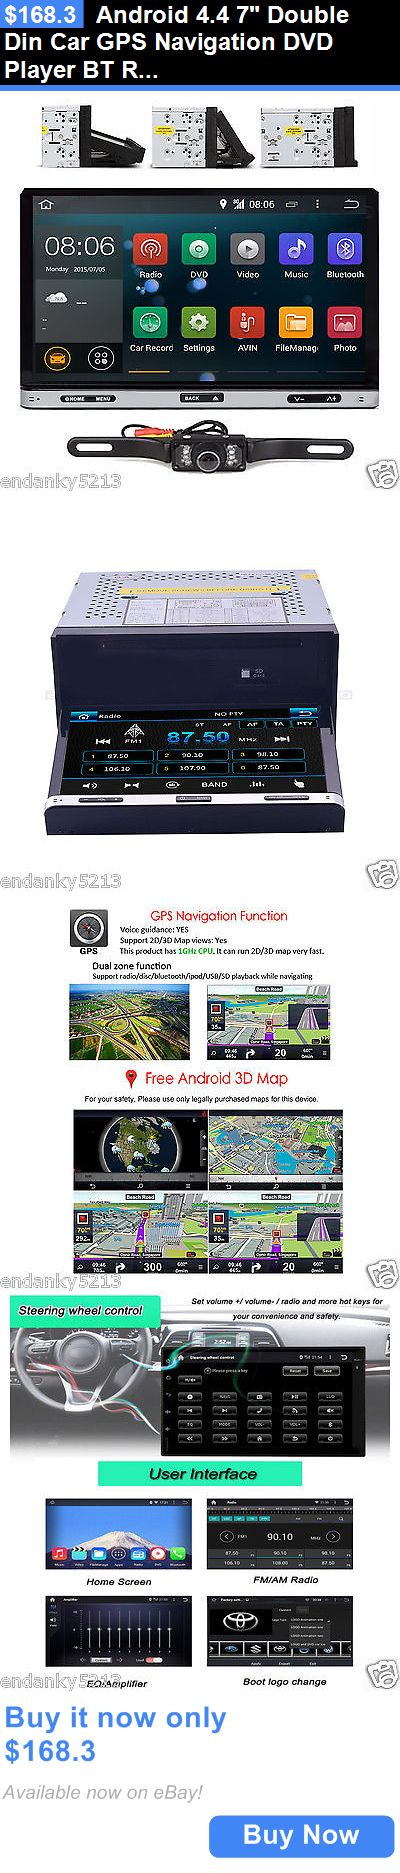 Video In-Dash Units w GPS: Android 4.4 7 Double Din Car Gps Navigation Dvd Player Bt Radio Stereo+Camera BUY IT NOW ONLY: $168.3